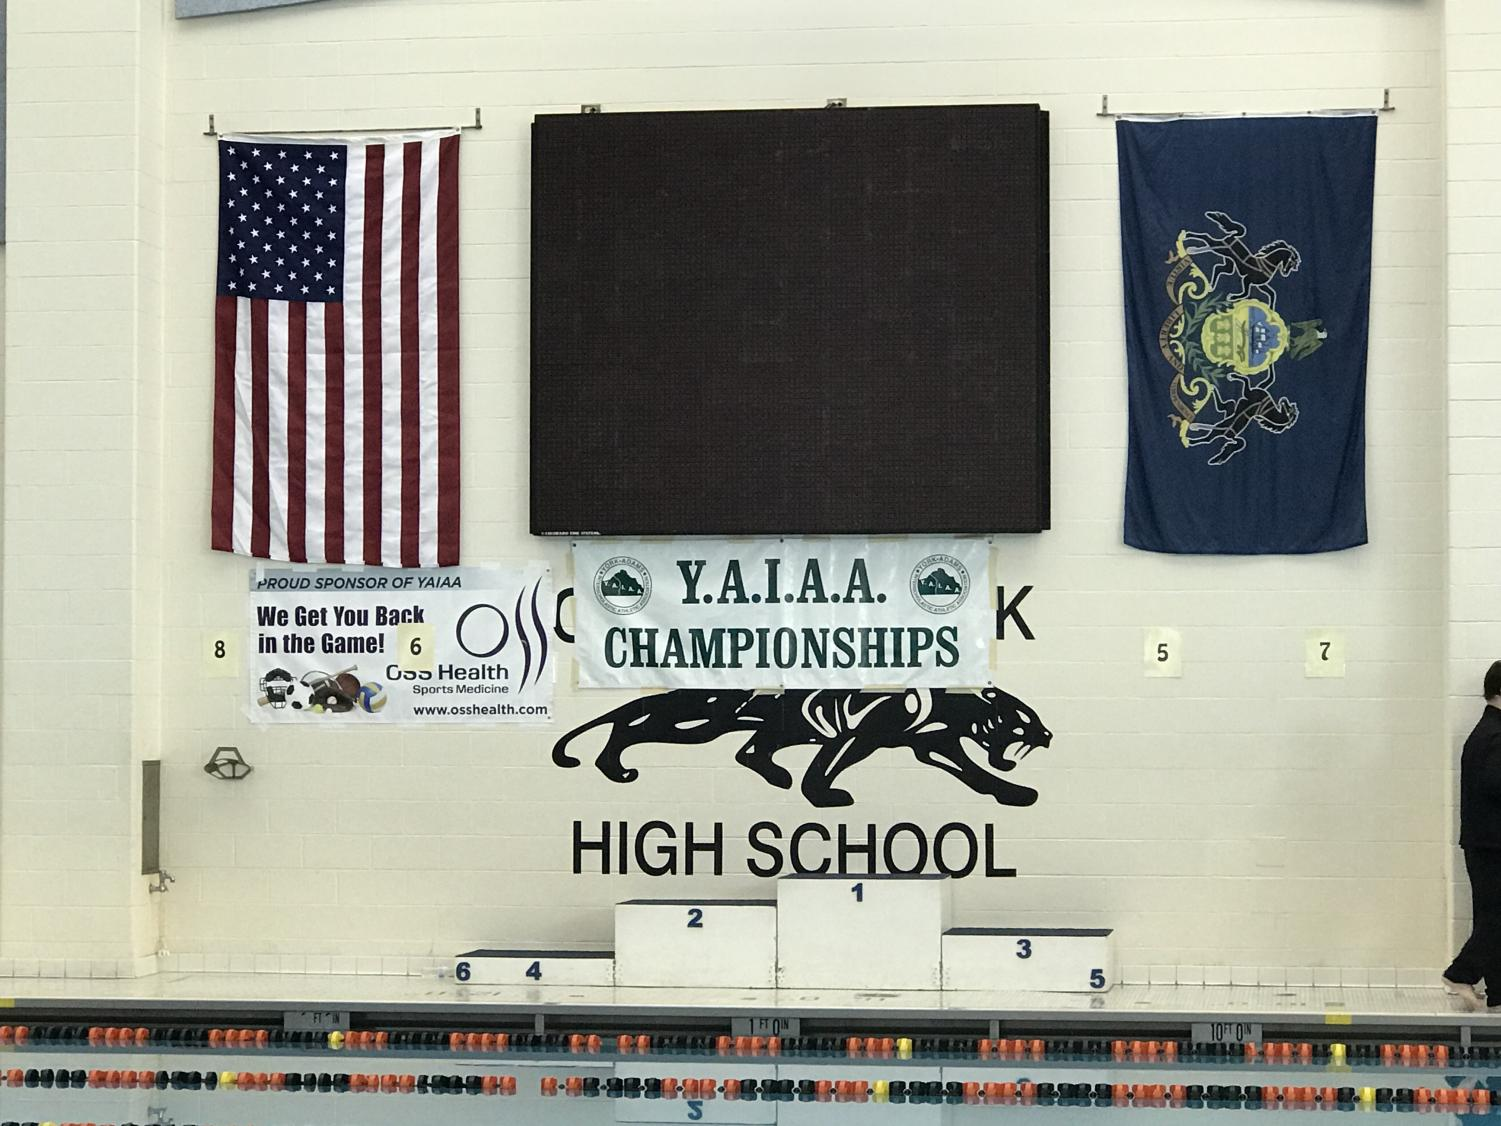 Local schools competed at the 2109 YAIAA Swim Championships this past weekend for chance to qualify for the District III meet.